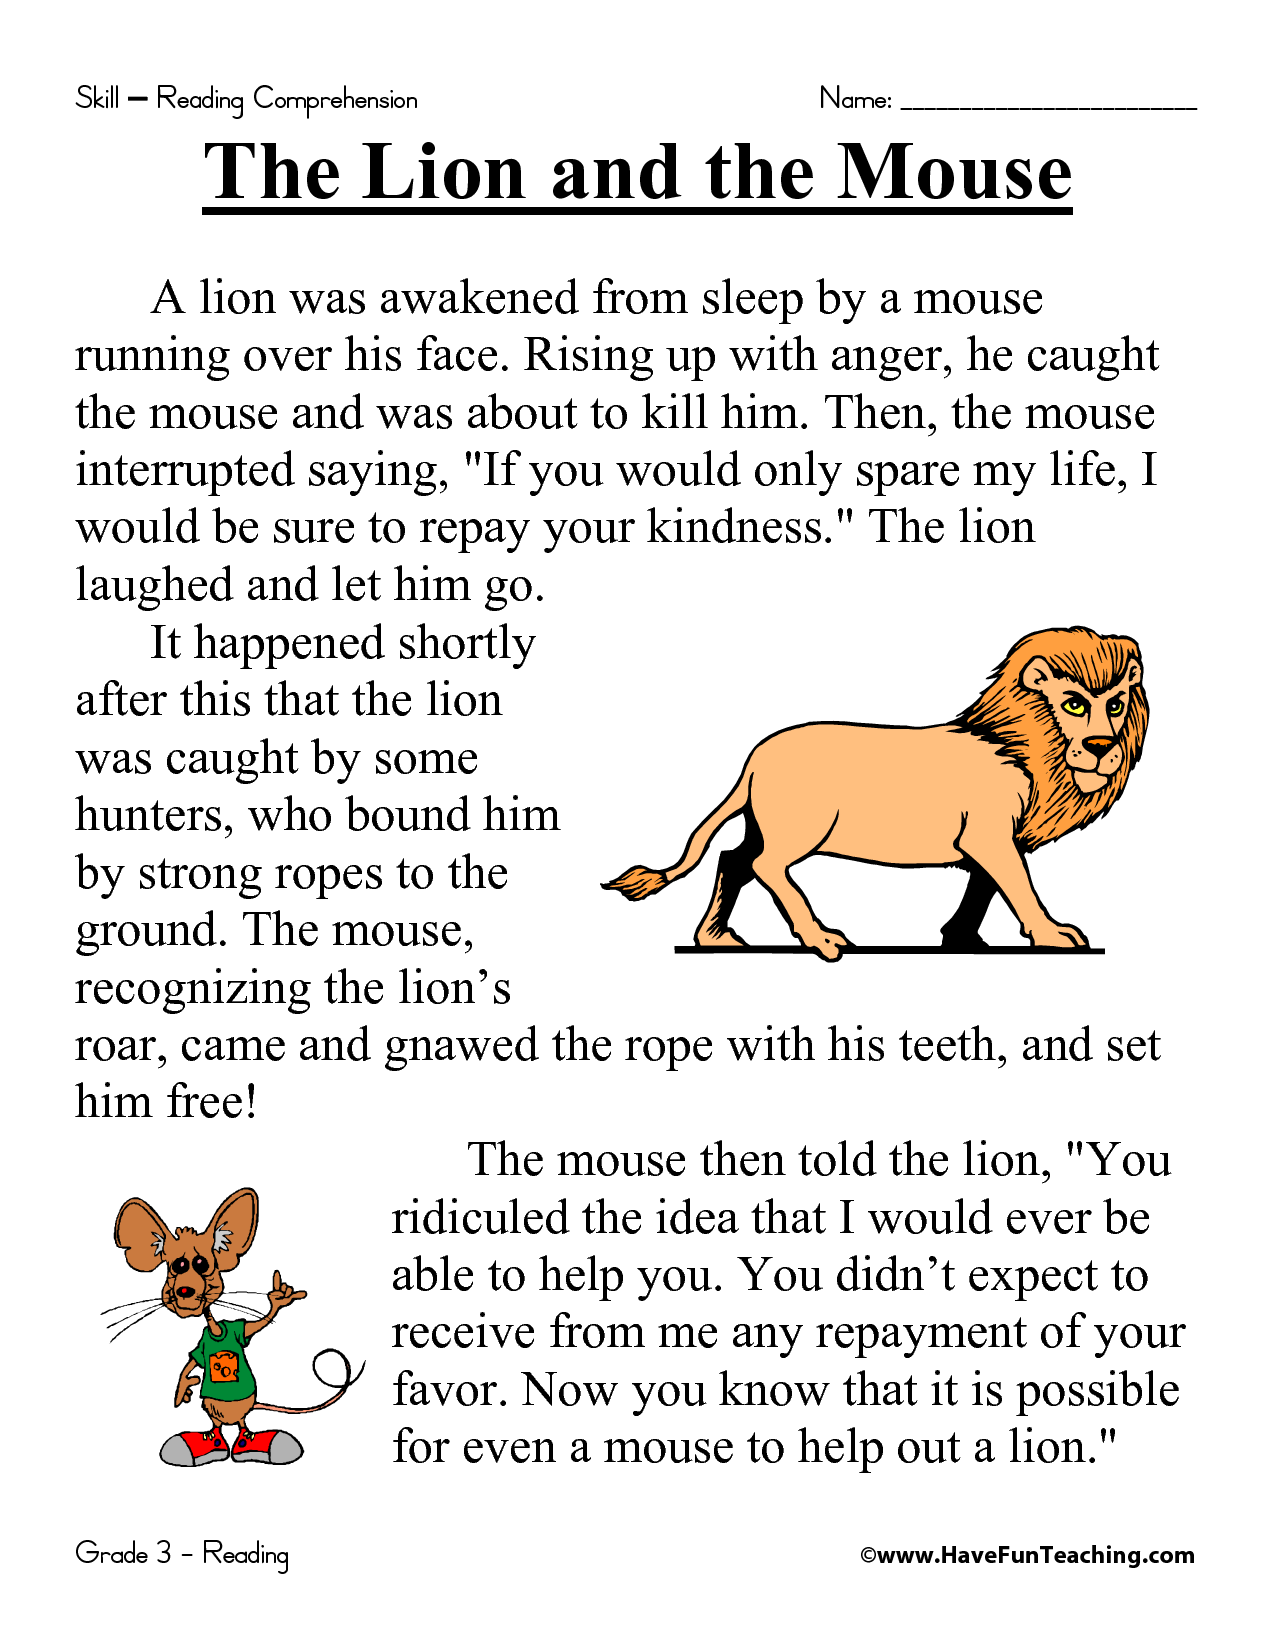 Worksheets Free Comprehension Worksheets For Grade 3 first grade reading comprehension worksheets the lion and mouse worksheet